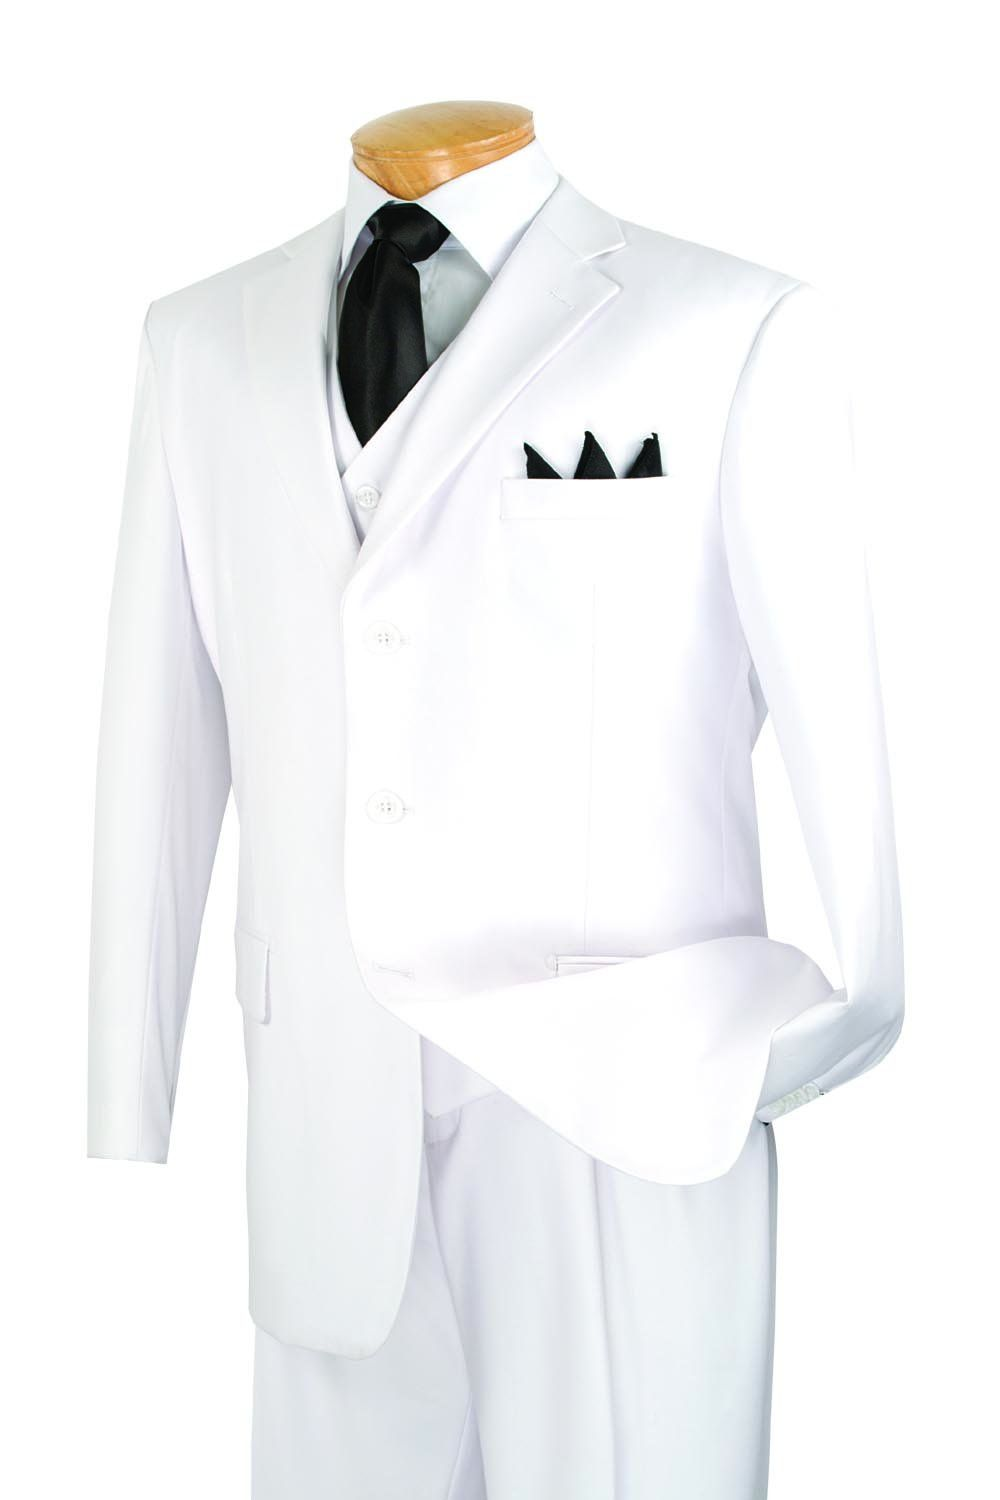 New Mens 3 Button Single Breasted White Dress Suit